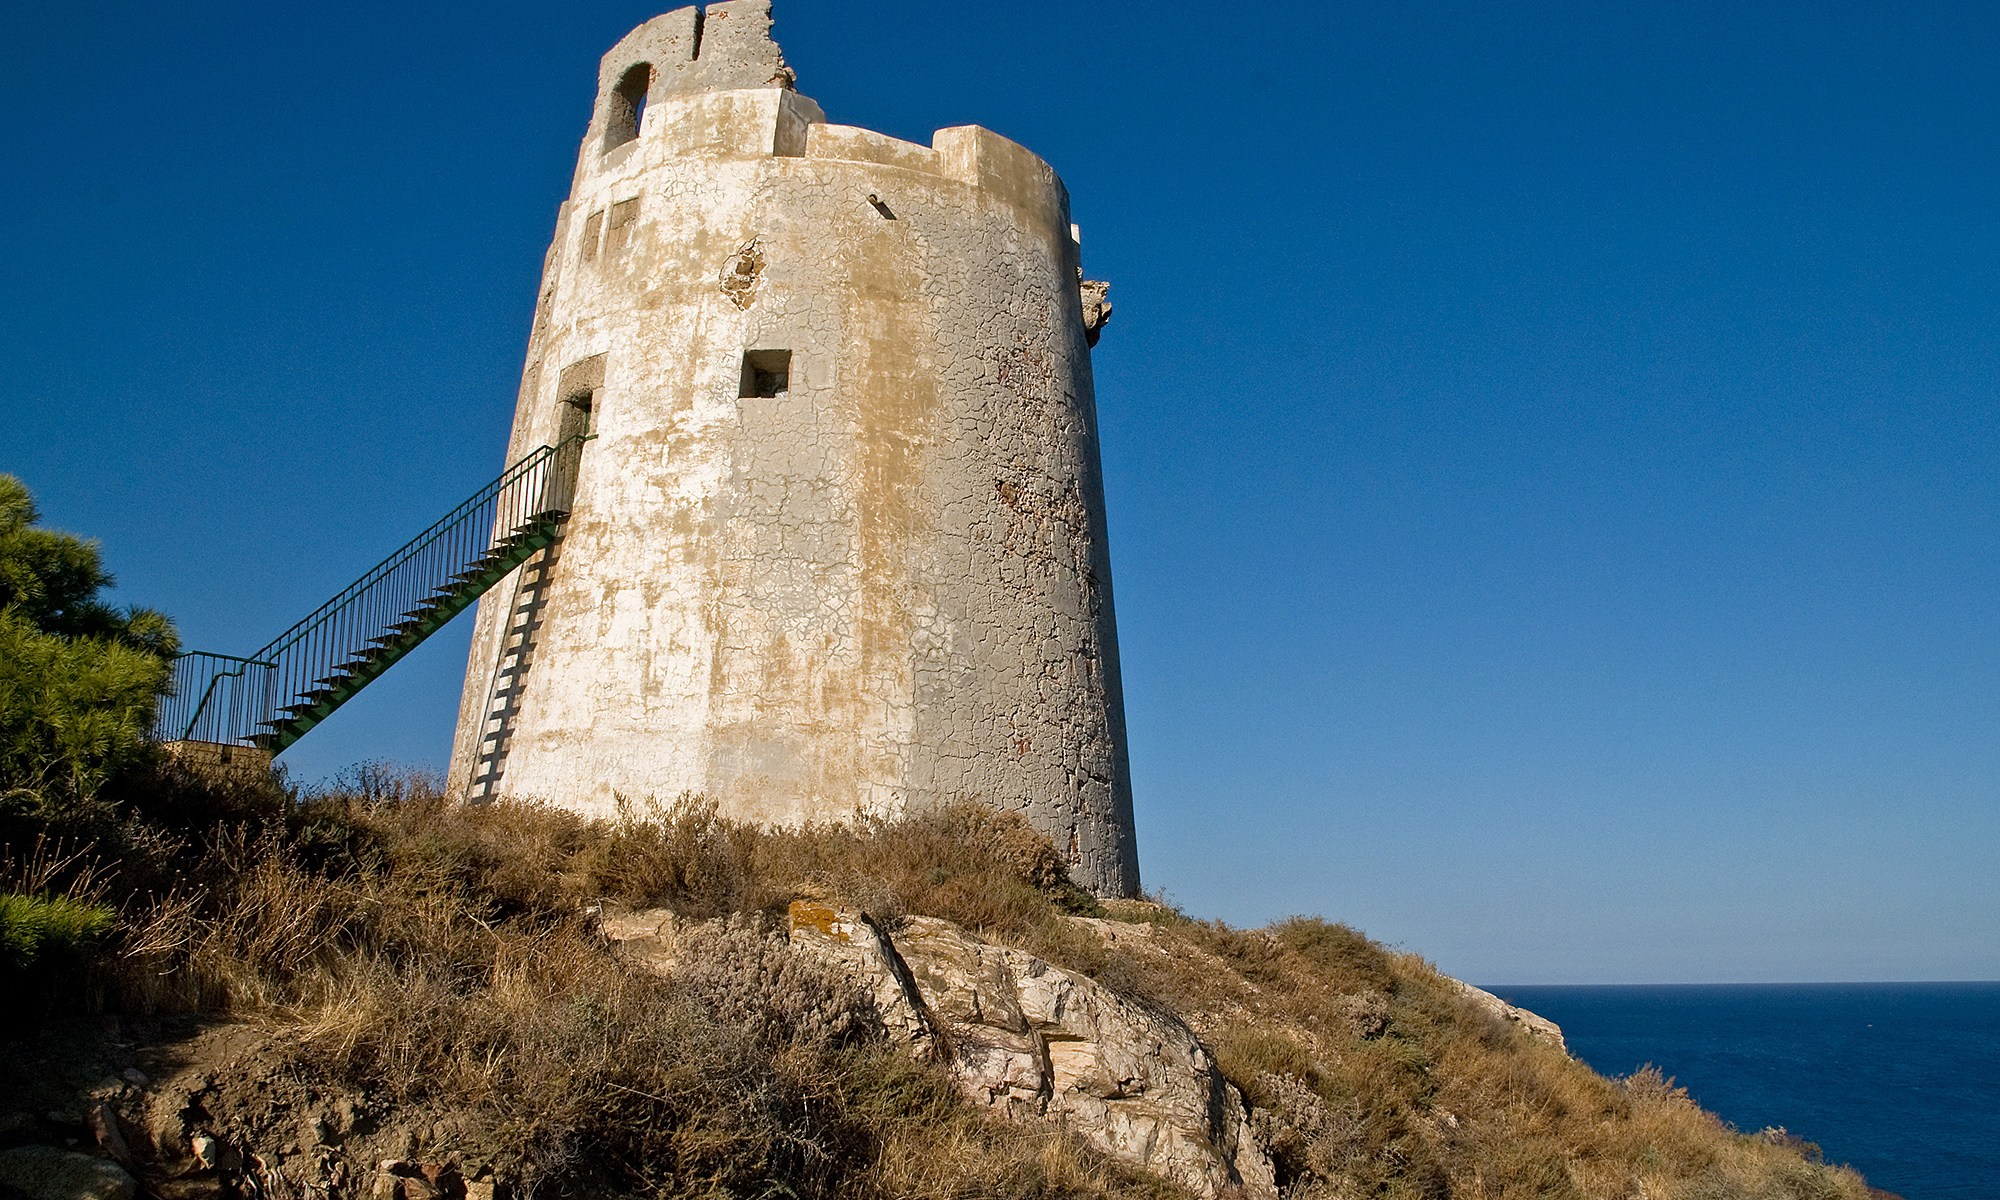 Lookout Tower on the Coast of Sardinia